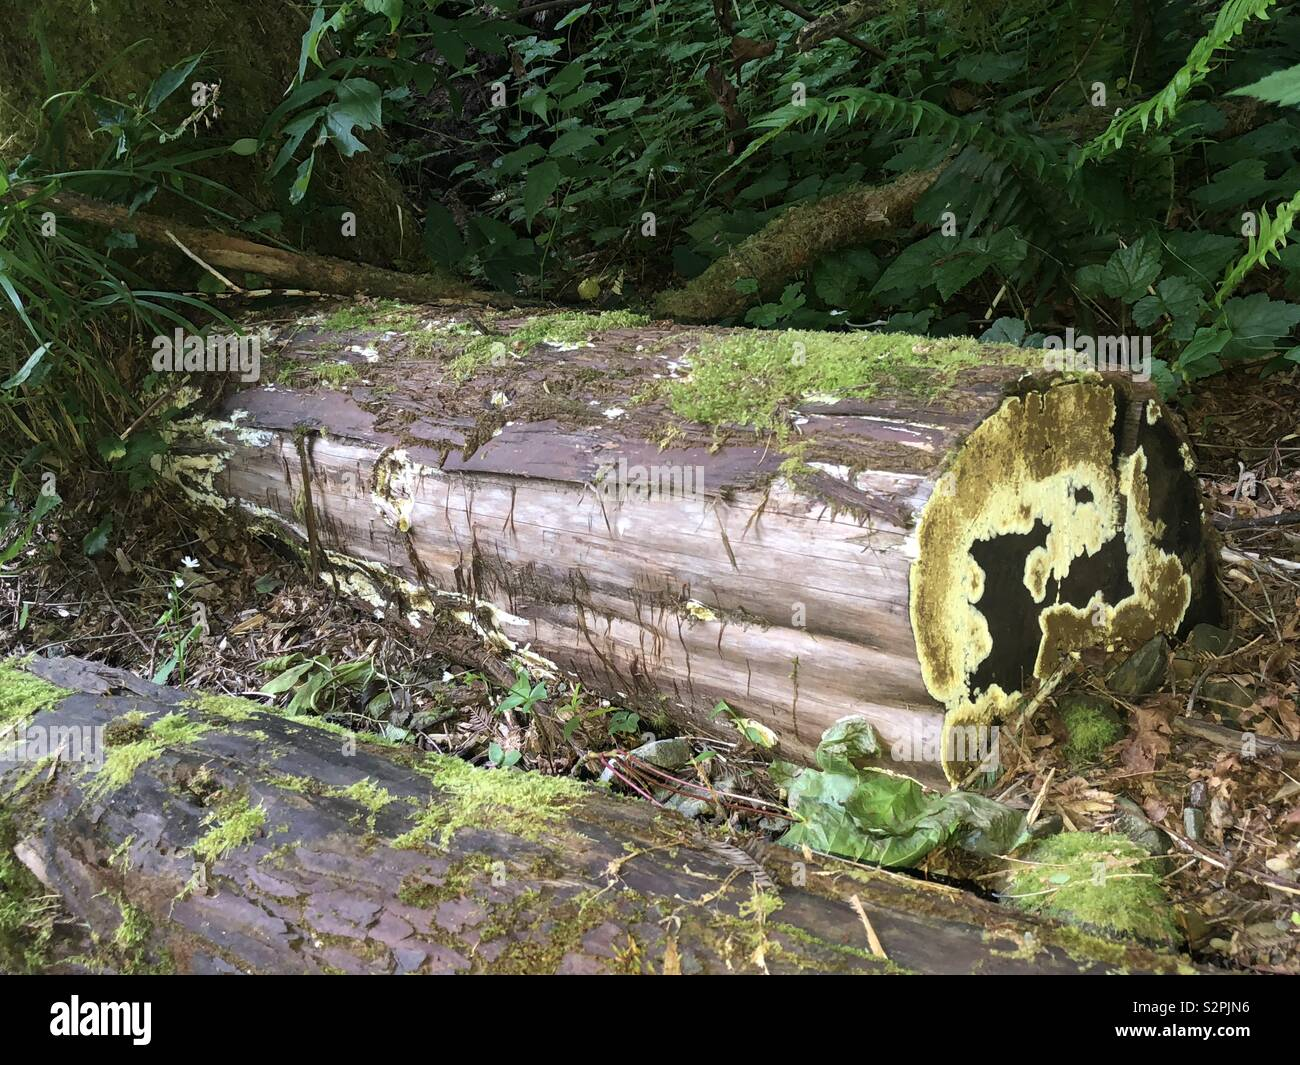 Log in the reedwoods - Stock Image